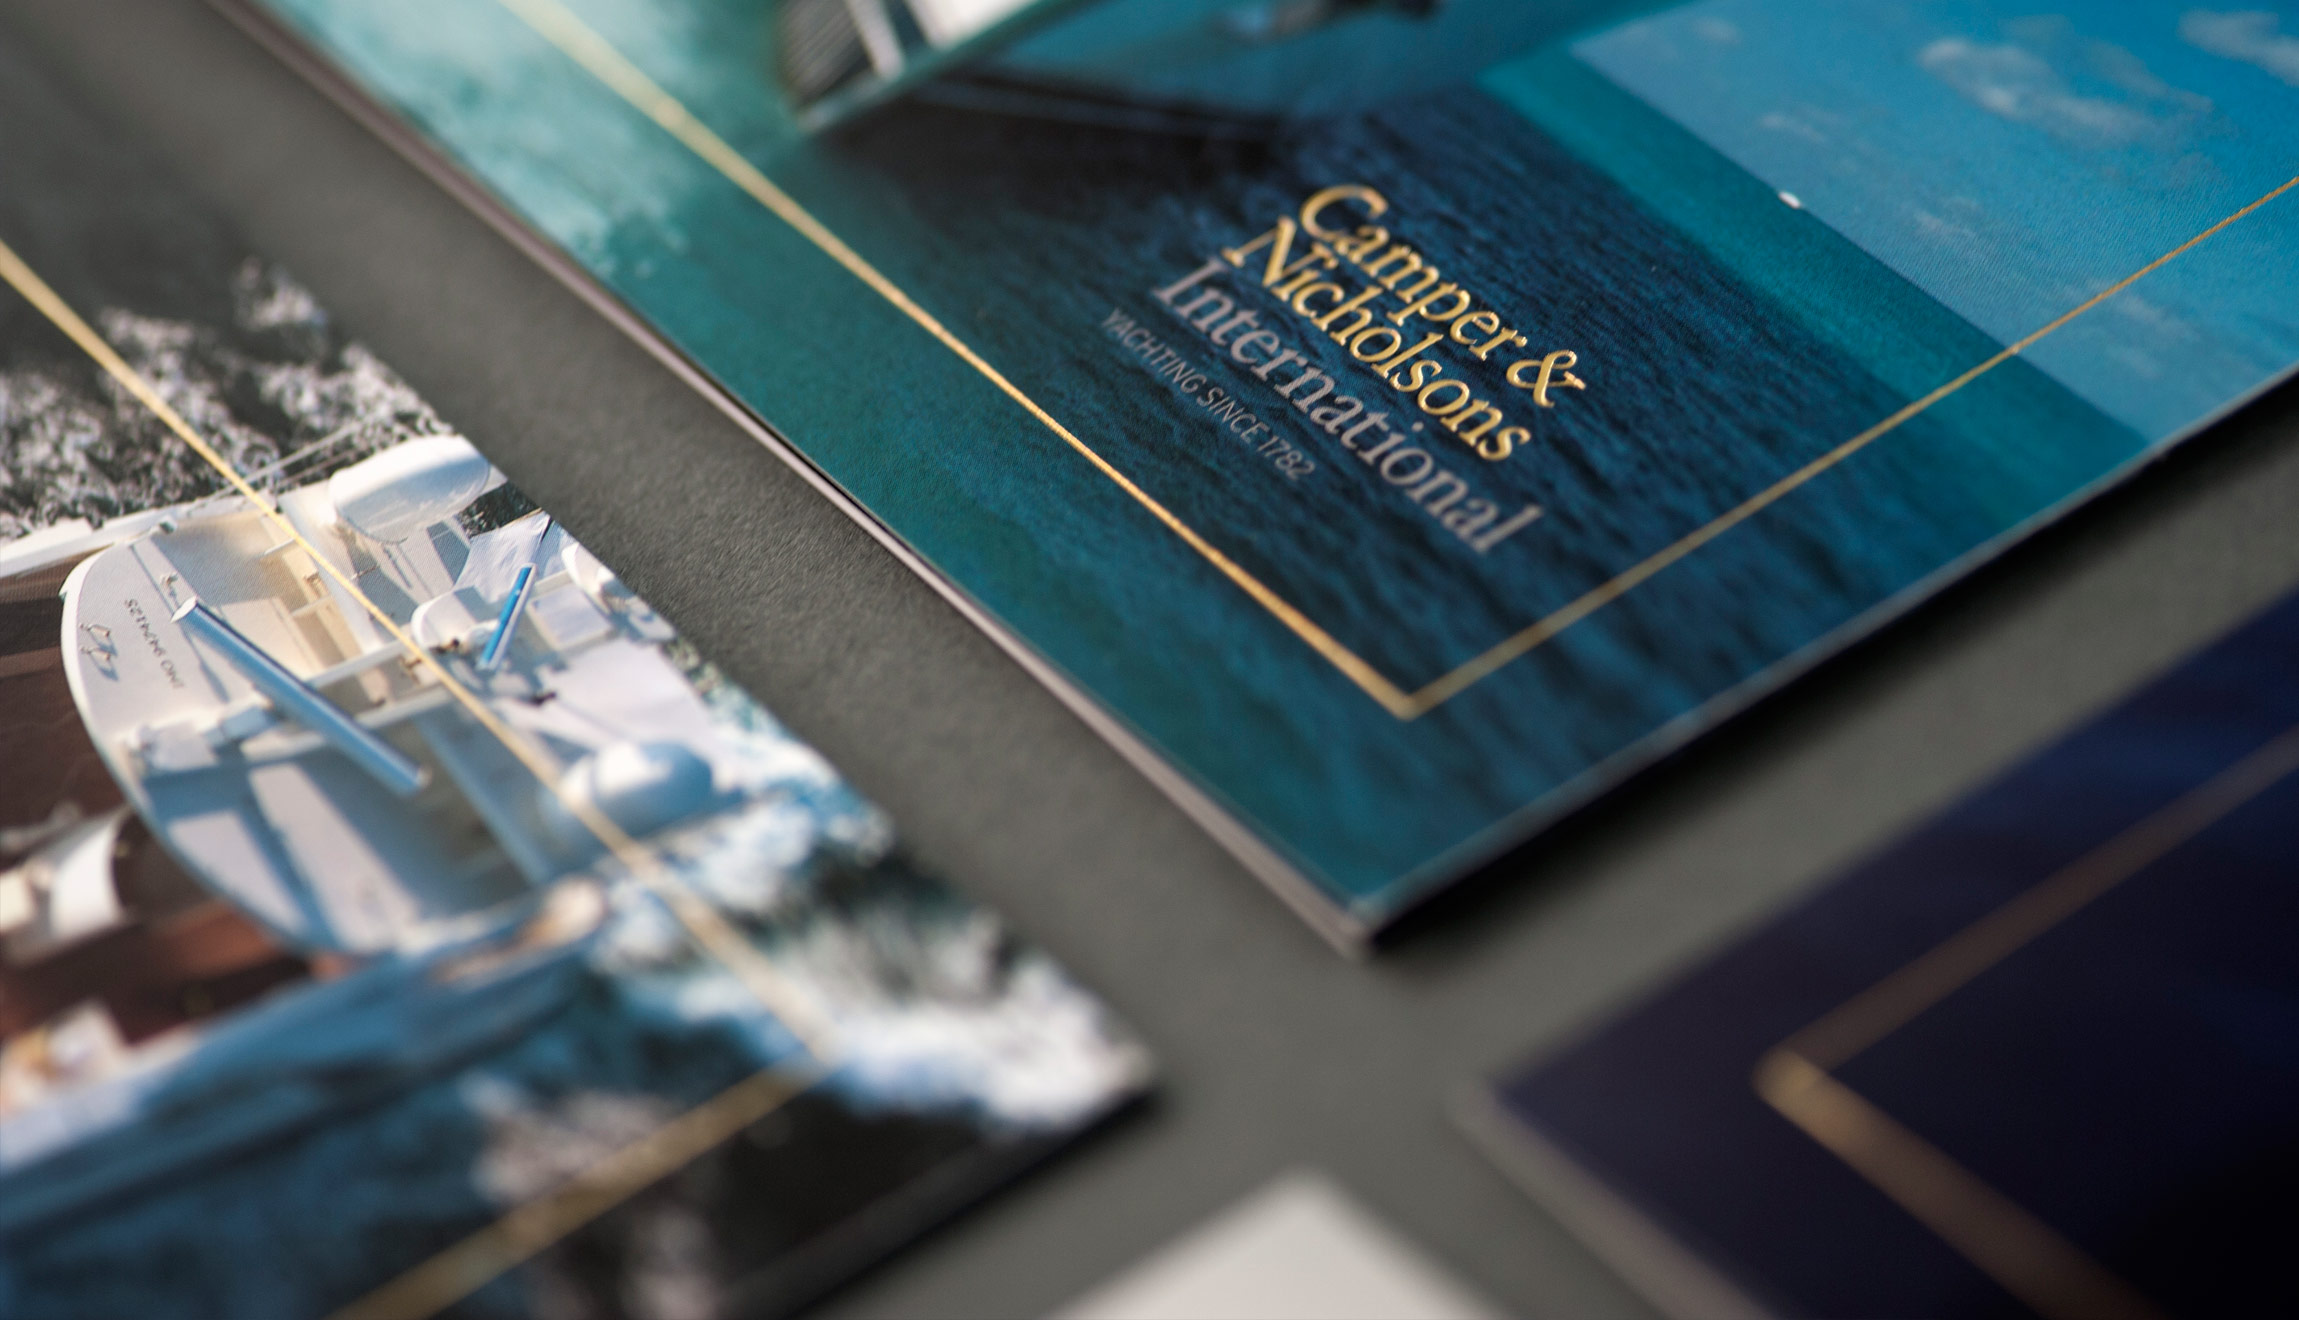 Camper & Nicholsons department brochures